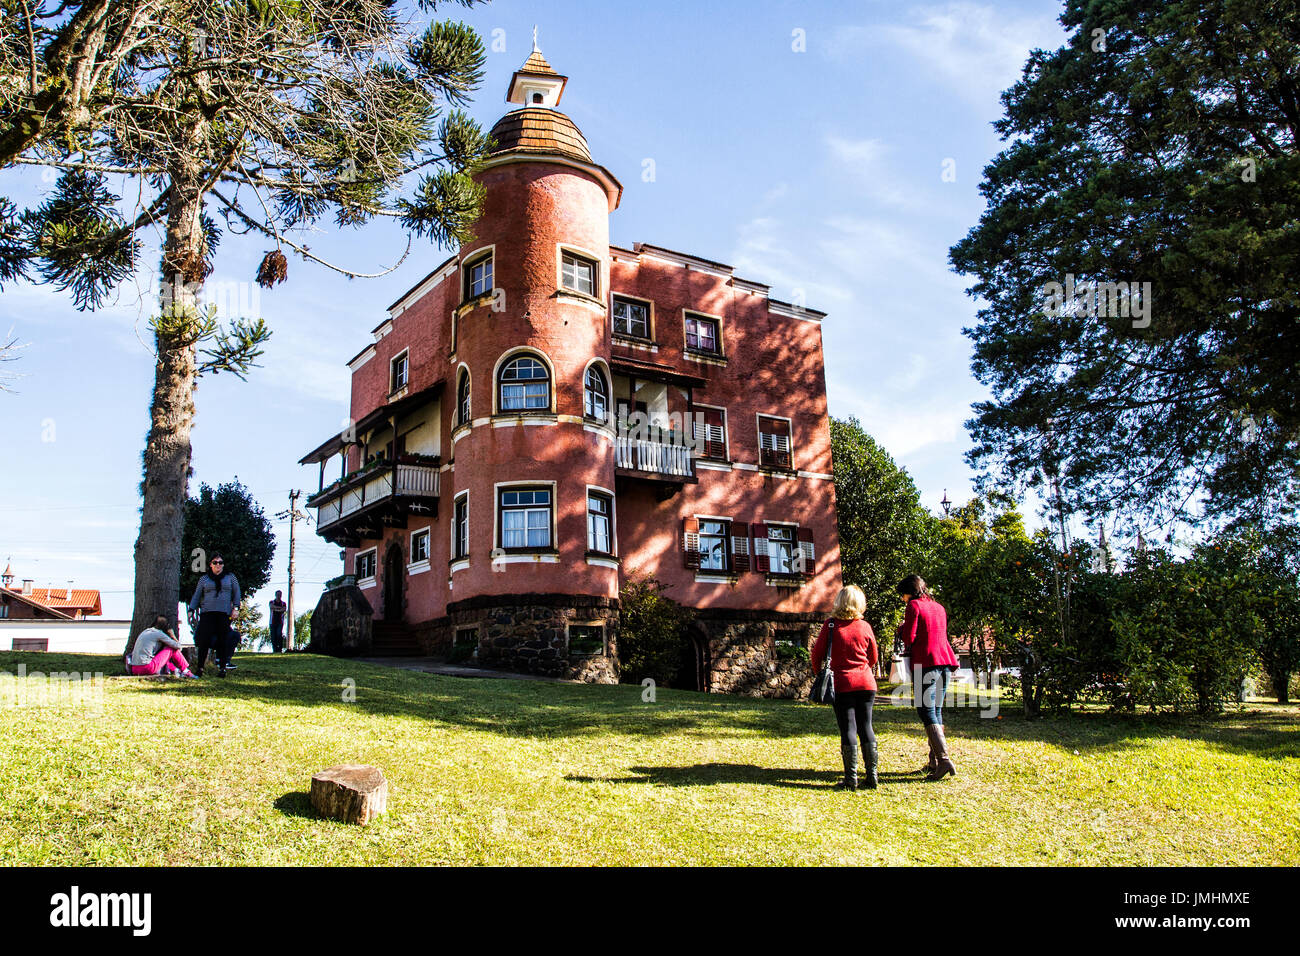 Andreas Thaler Municipal Museum, where used to be the house of the city founder, Andreas Thaler. Treze Tilias, Santa Catarina, Brazil. - Stock Image